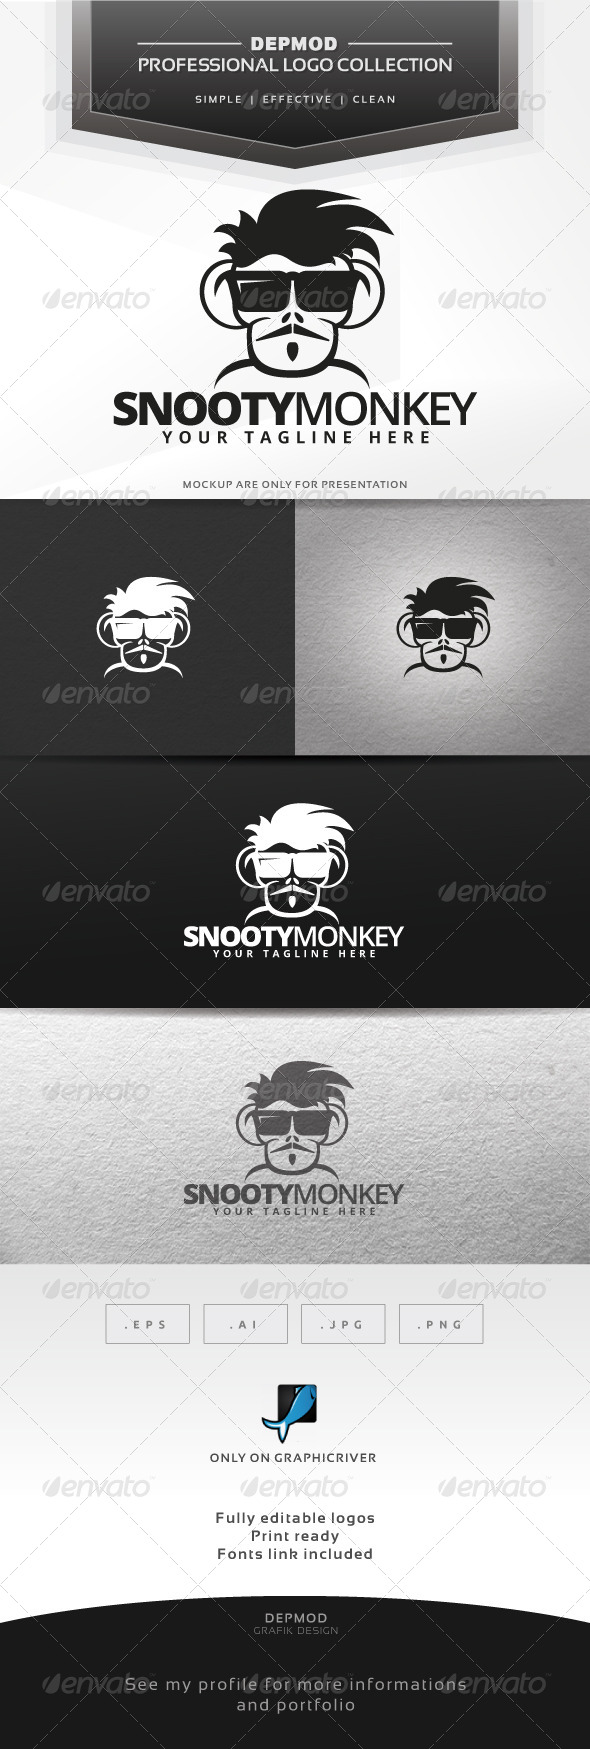 GraphicRiver Snooty Monkey Logo 6530924